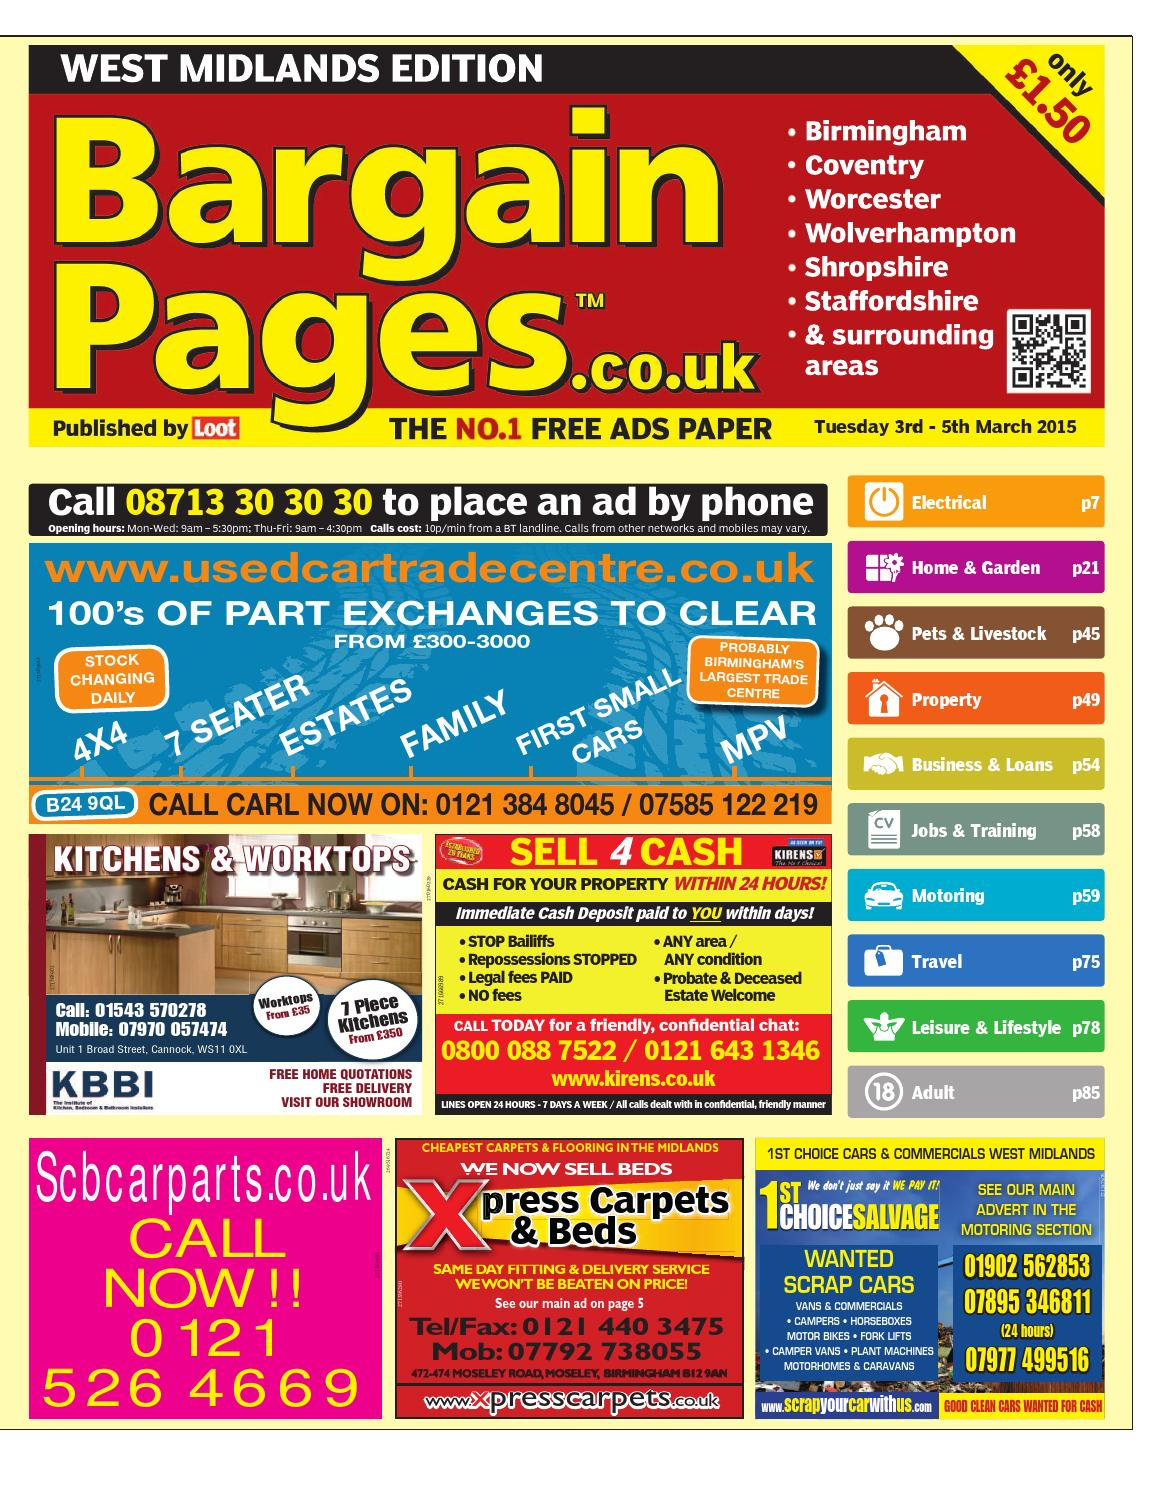 8b5b89dbdc8 Bargain Pages West Midlands, March 3rd 2015 by Loot - issuu